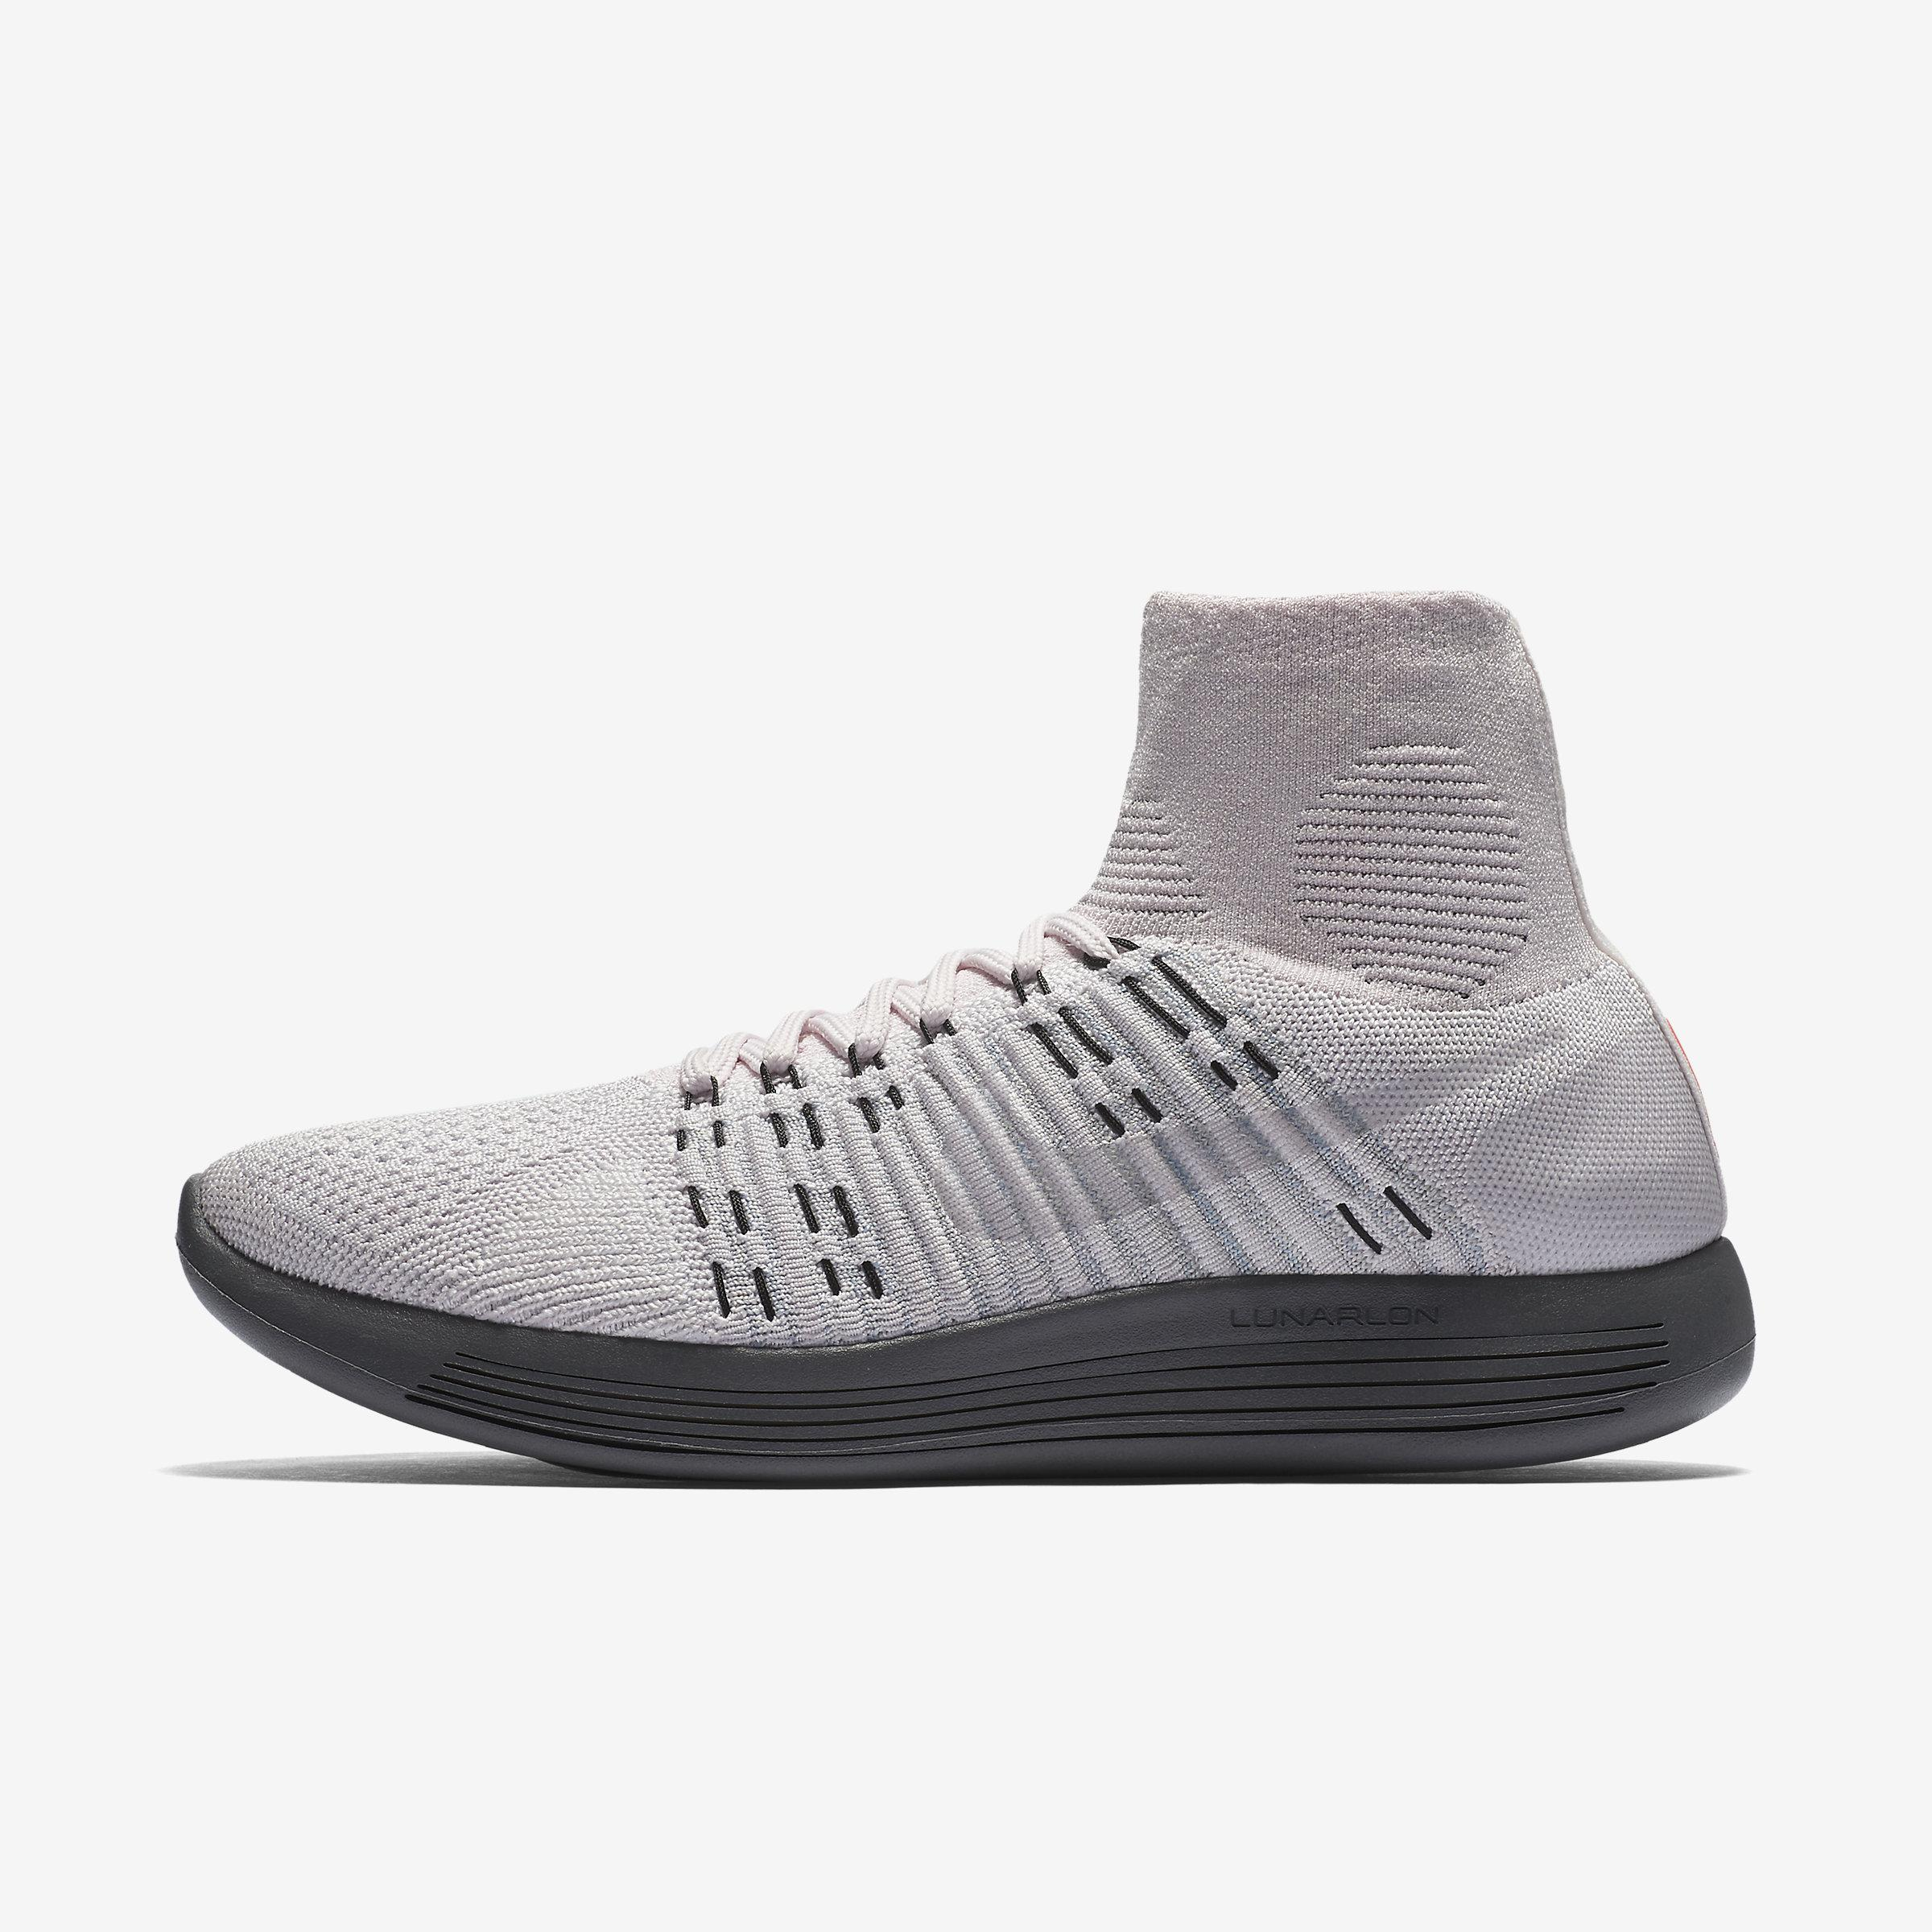 official photos e7237 62277 Nike - Gray Lab Lunarepic Flyknit for Men - Lyst